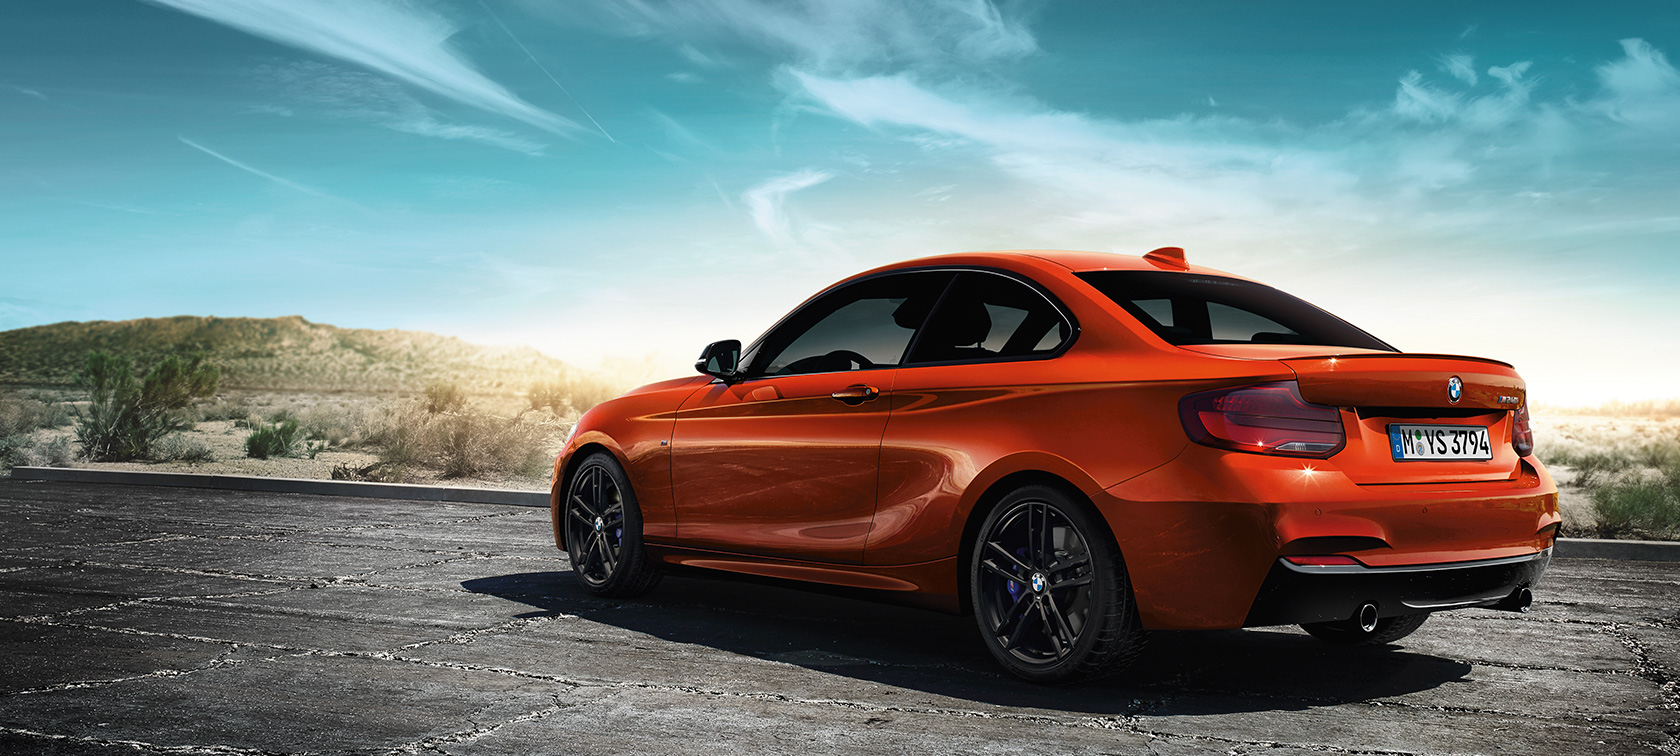 BMW M240i Coupé F22 2017 Sunset Orange metallic three-quarter rear view standing in front of steppe landscape